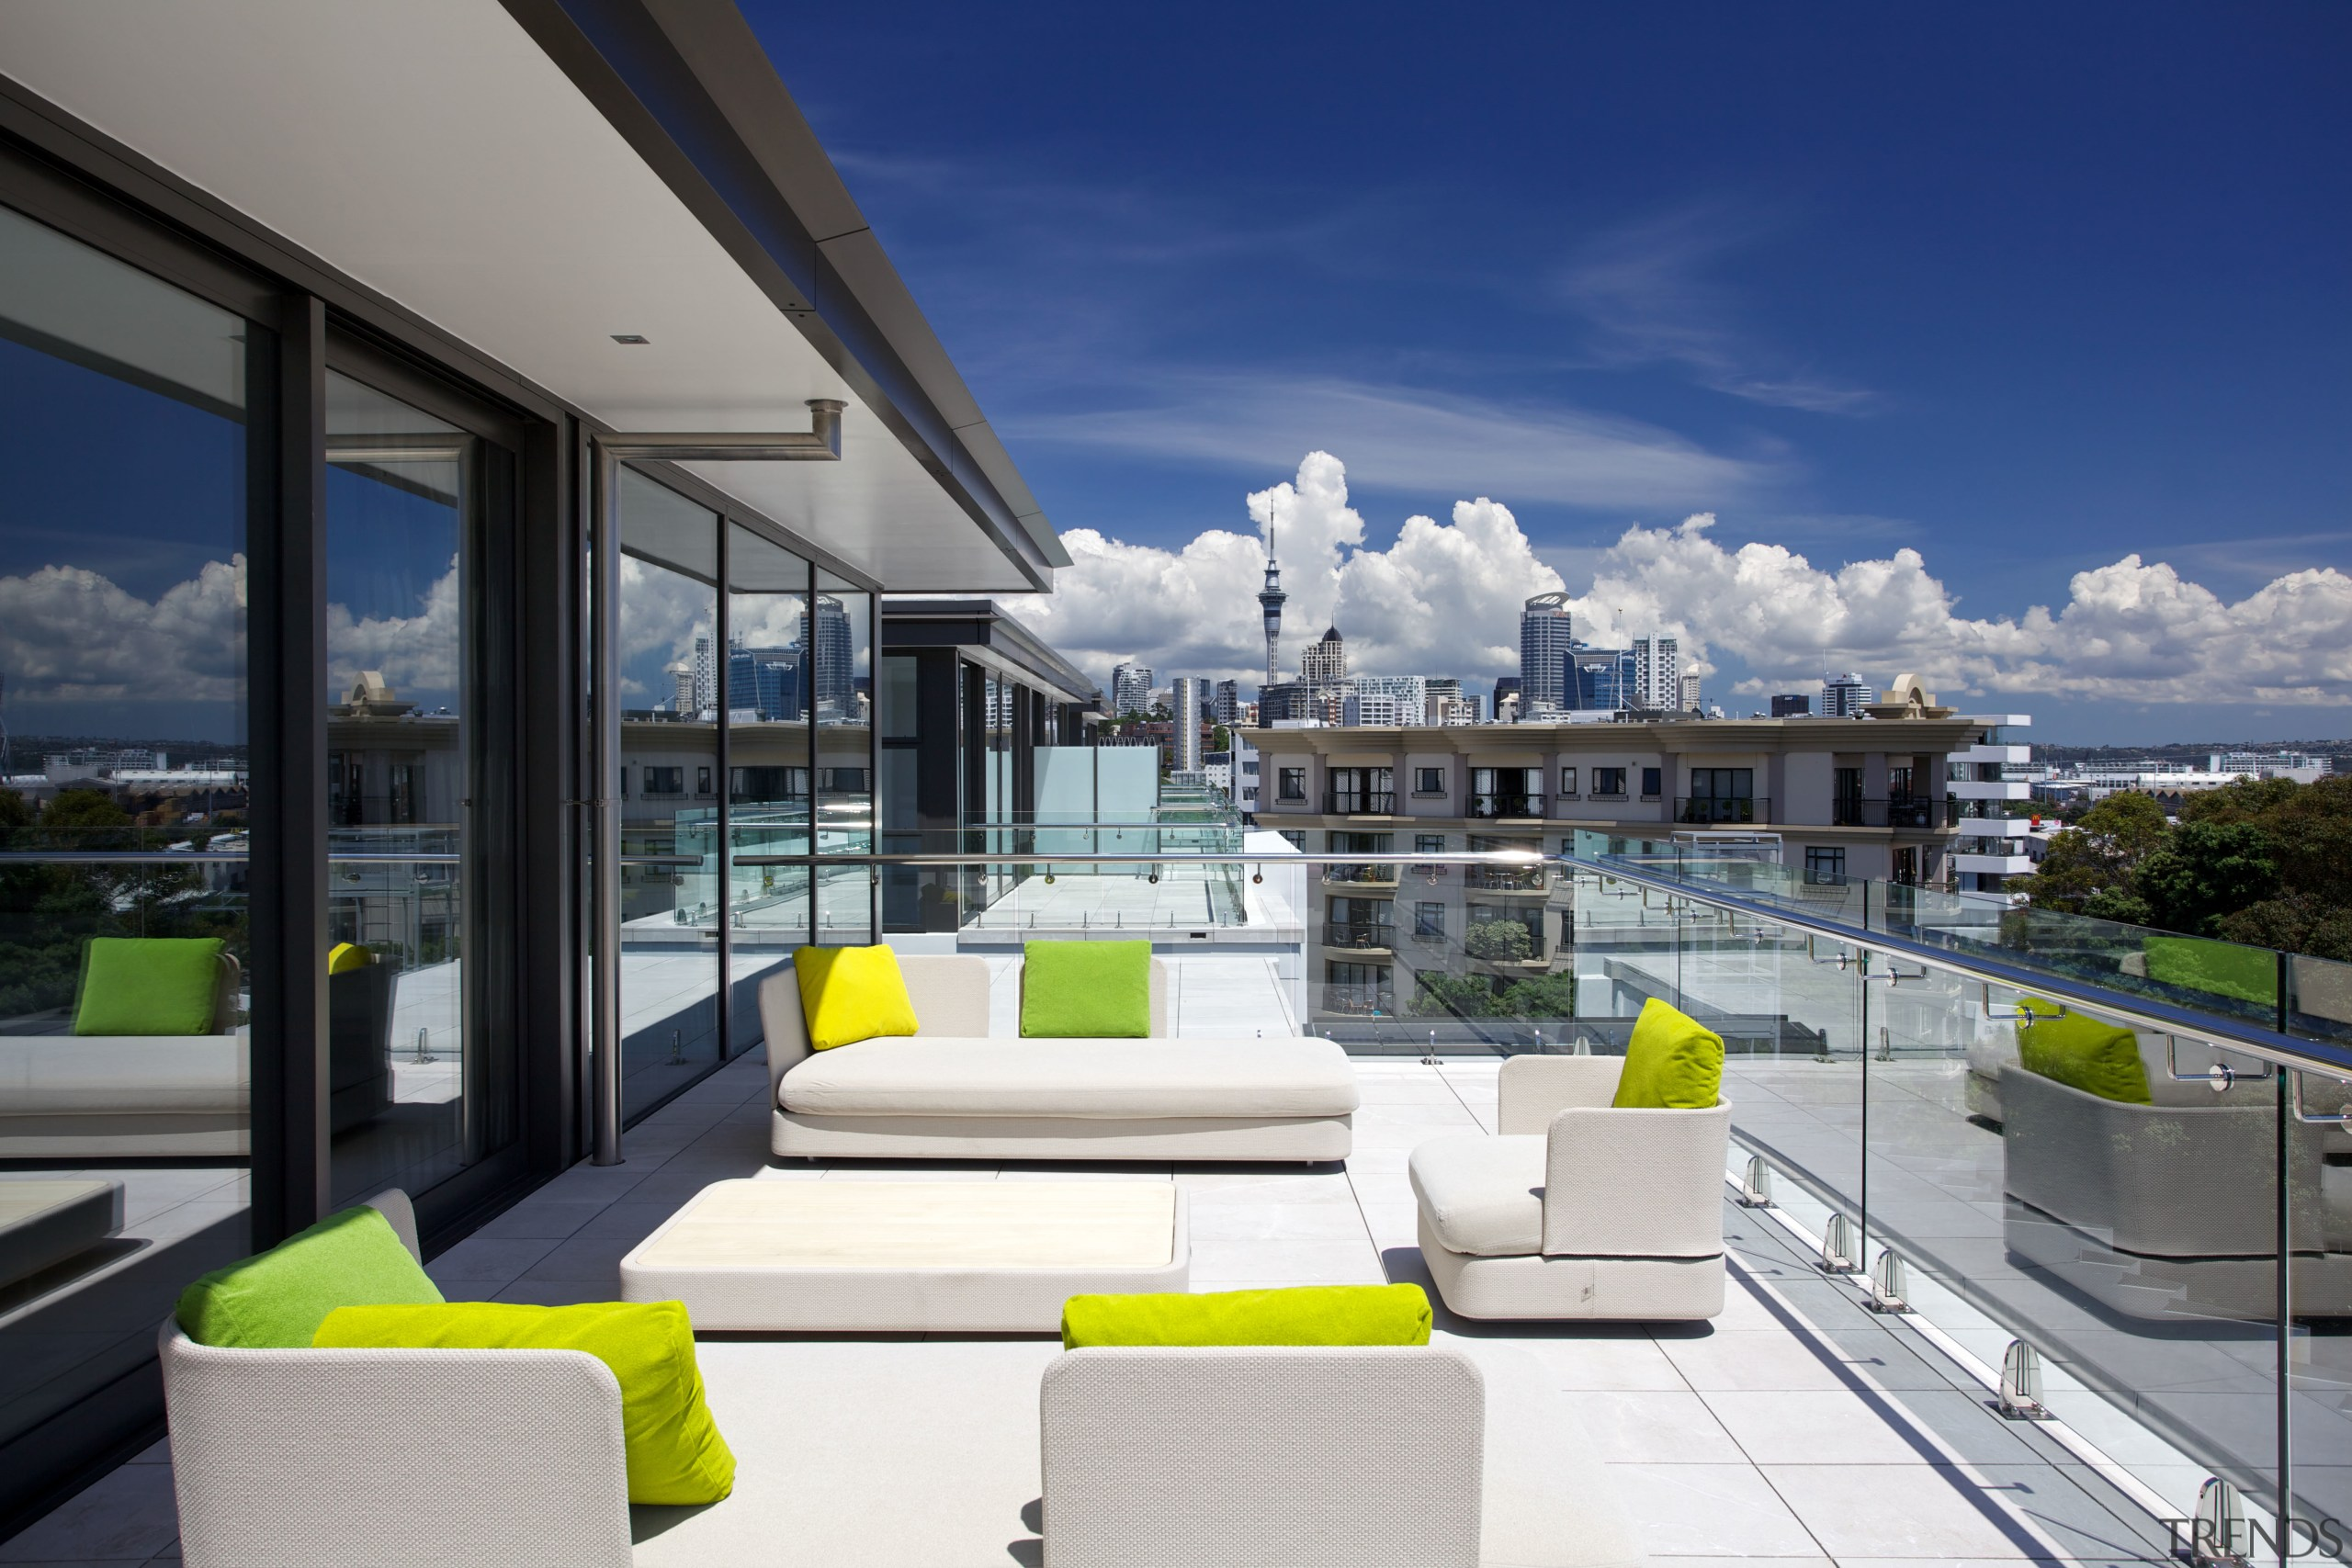 Large terraces are a feature of the four apartment, architecture, condominium, home, house, interior design, penthouse apartment, real estate, gray, blue